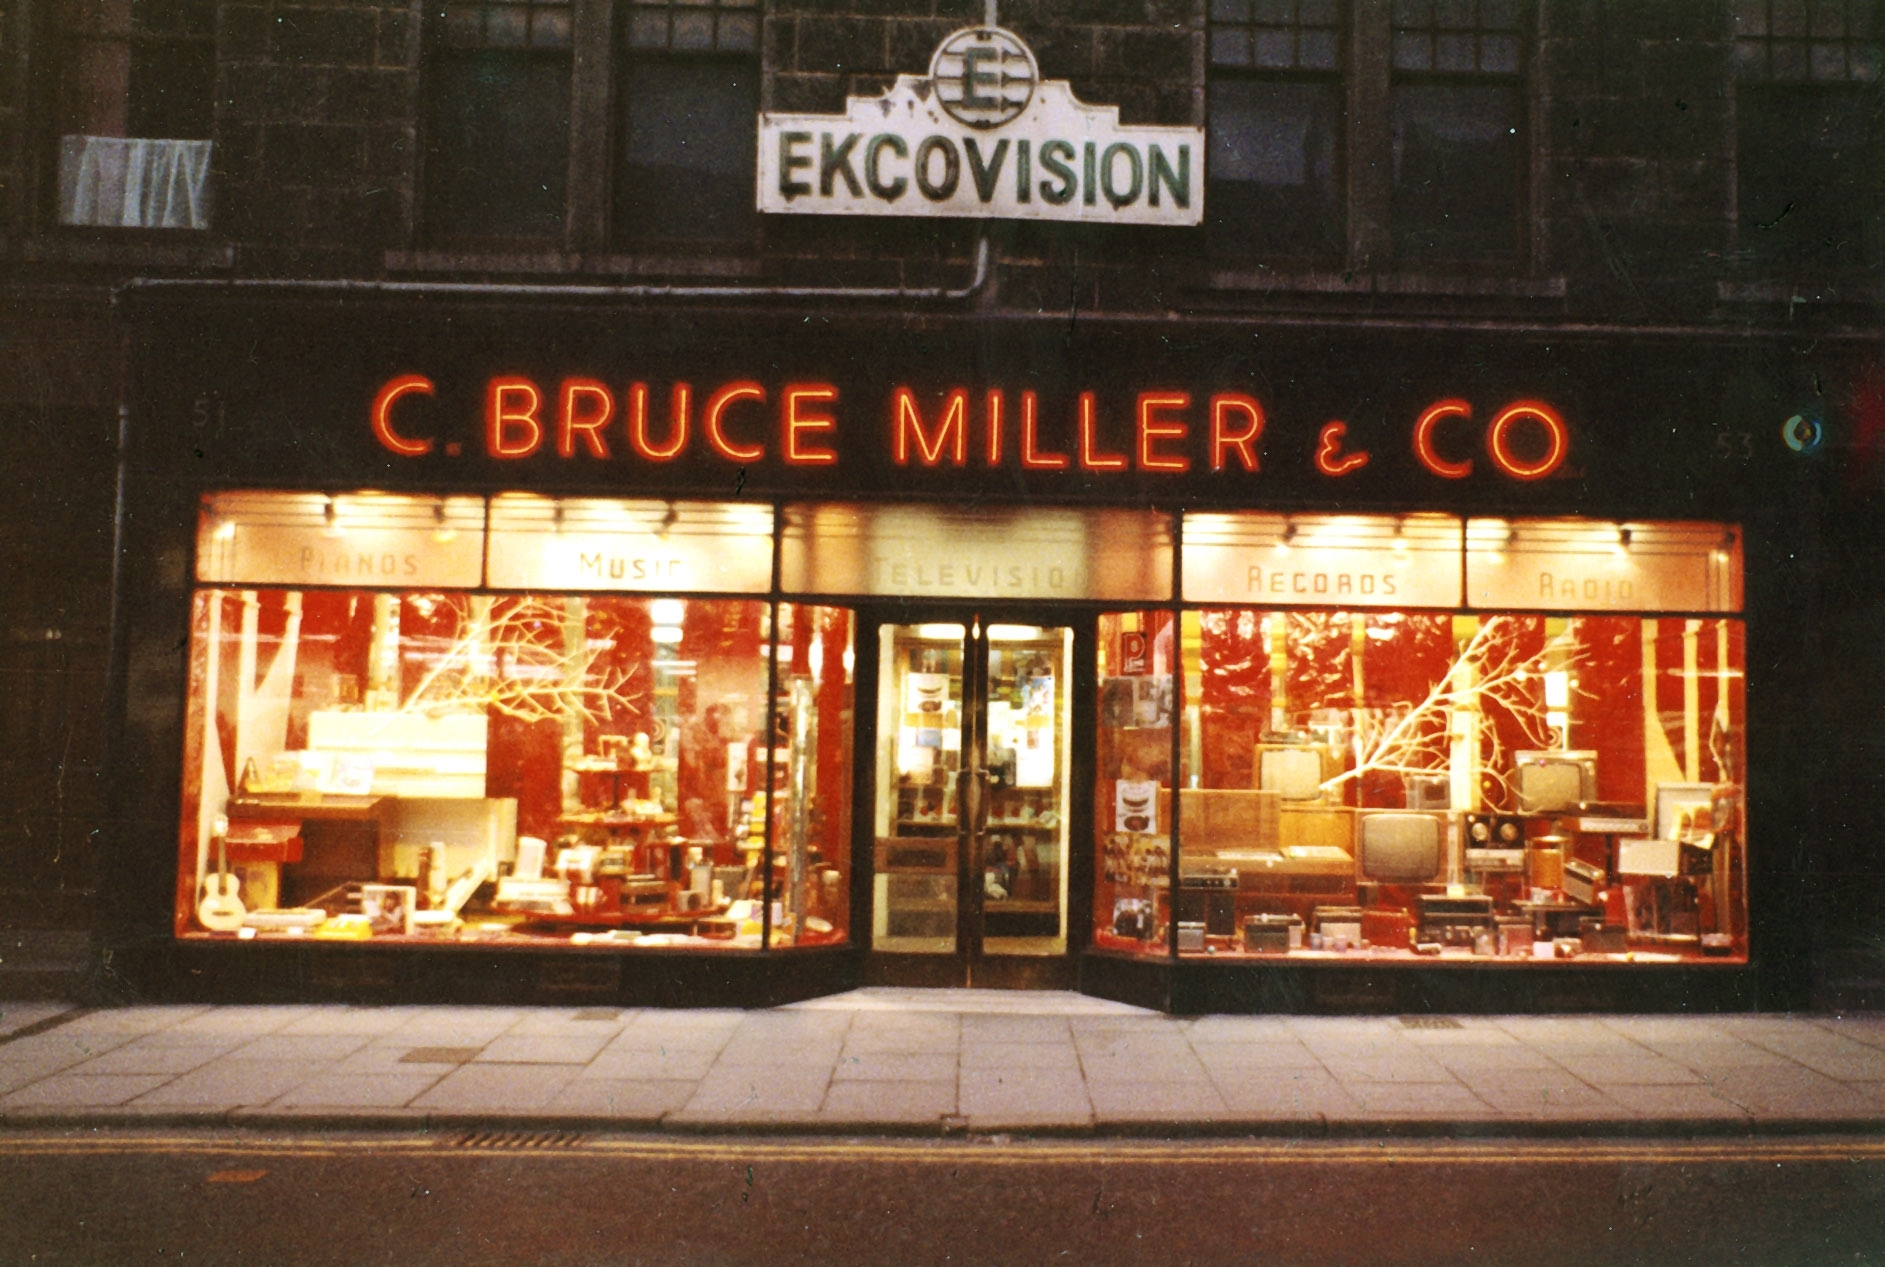 The store originally opened on George Street before moving to Union Street